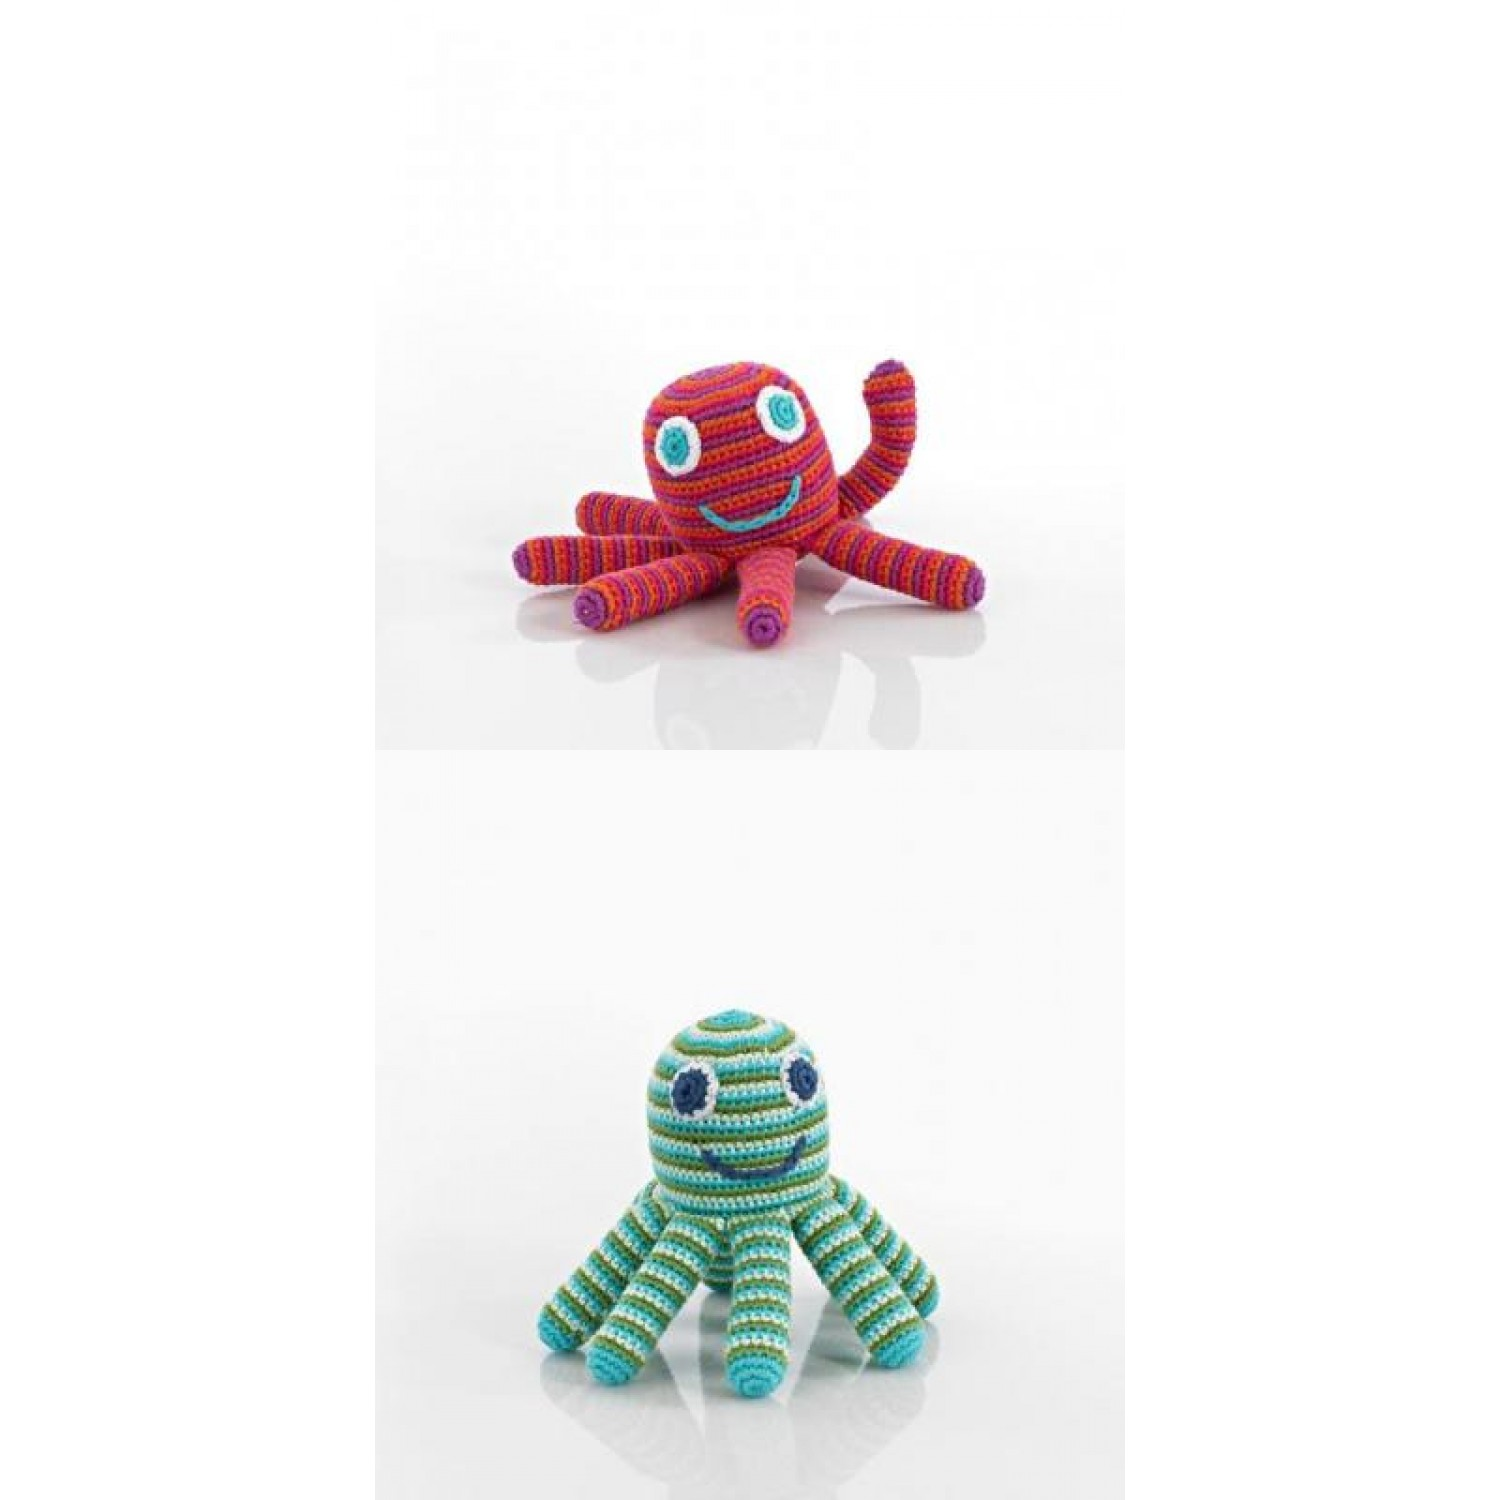 Handmade Baby Rattle Octopus of Cotton | Pebble